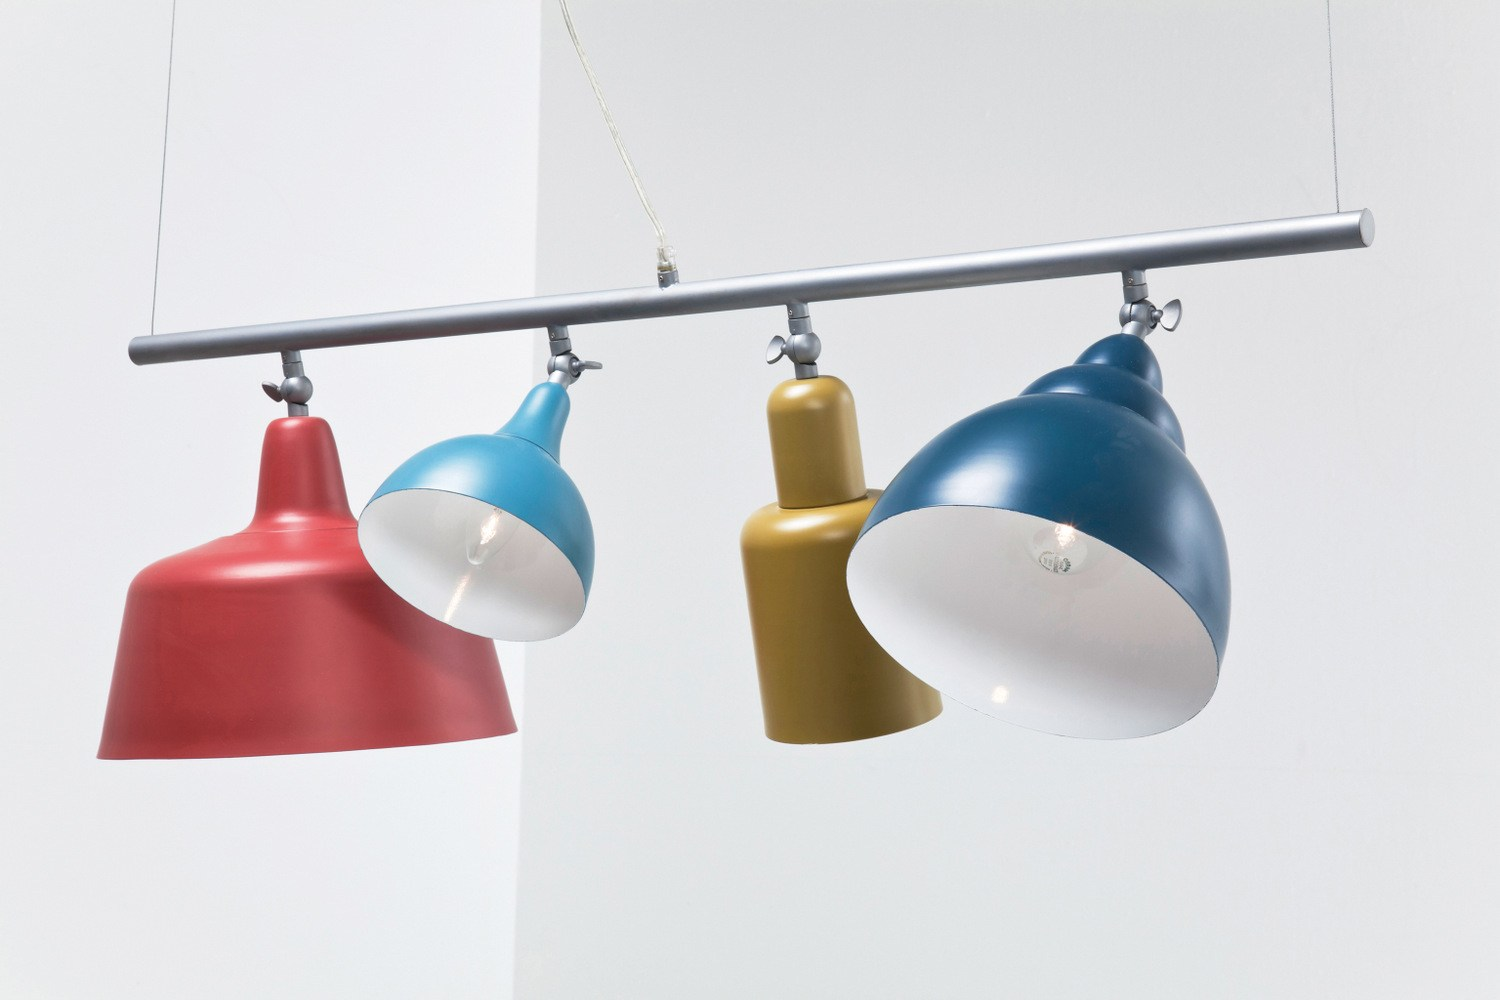 Kare Designe Powder Coated Steel Pendant Lamp Variety By Kare Design